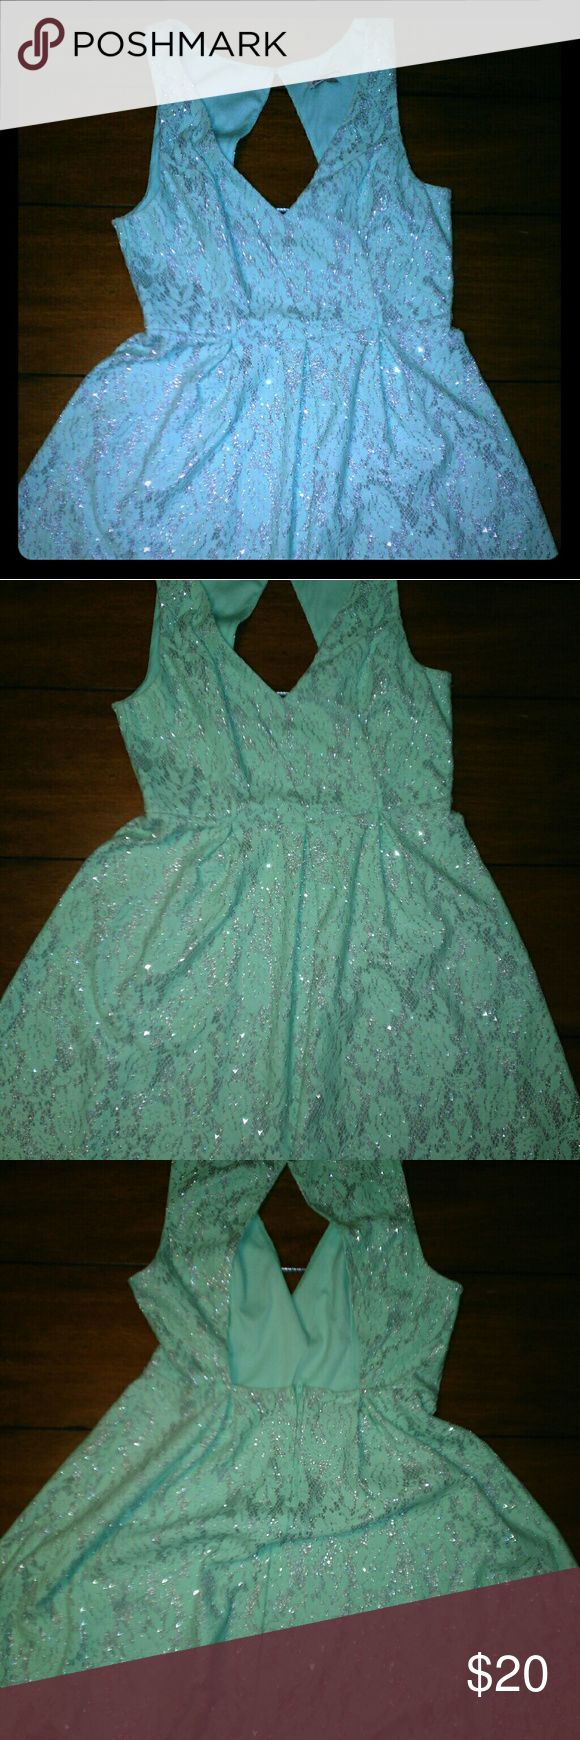 Girls night out dress Mint green and silver lace dress for a night on the town!! Charlotte Russe Dresses Mini